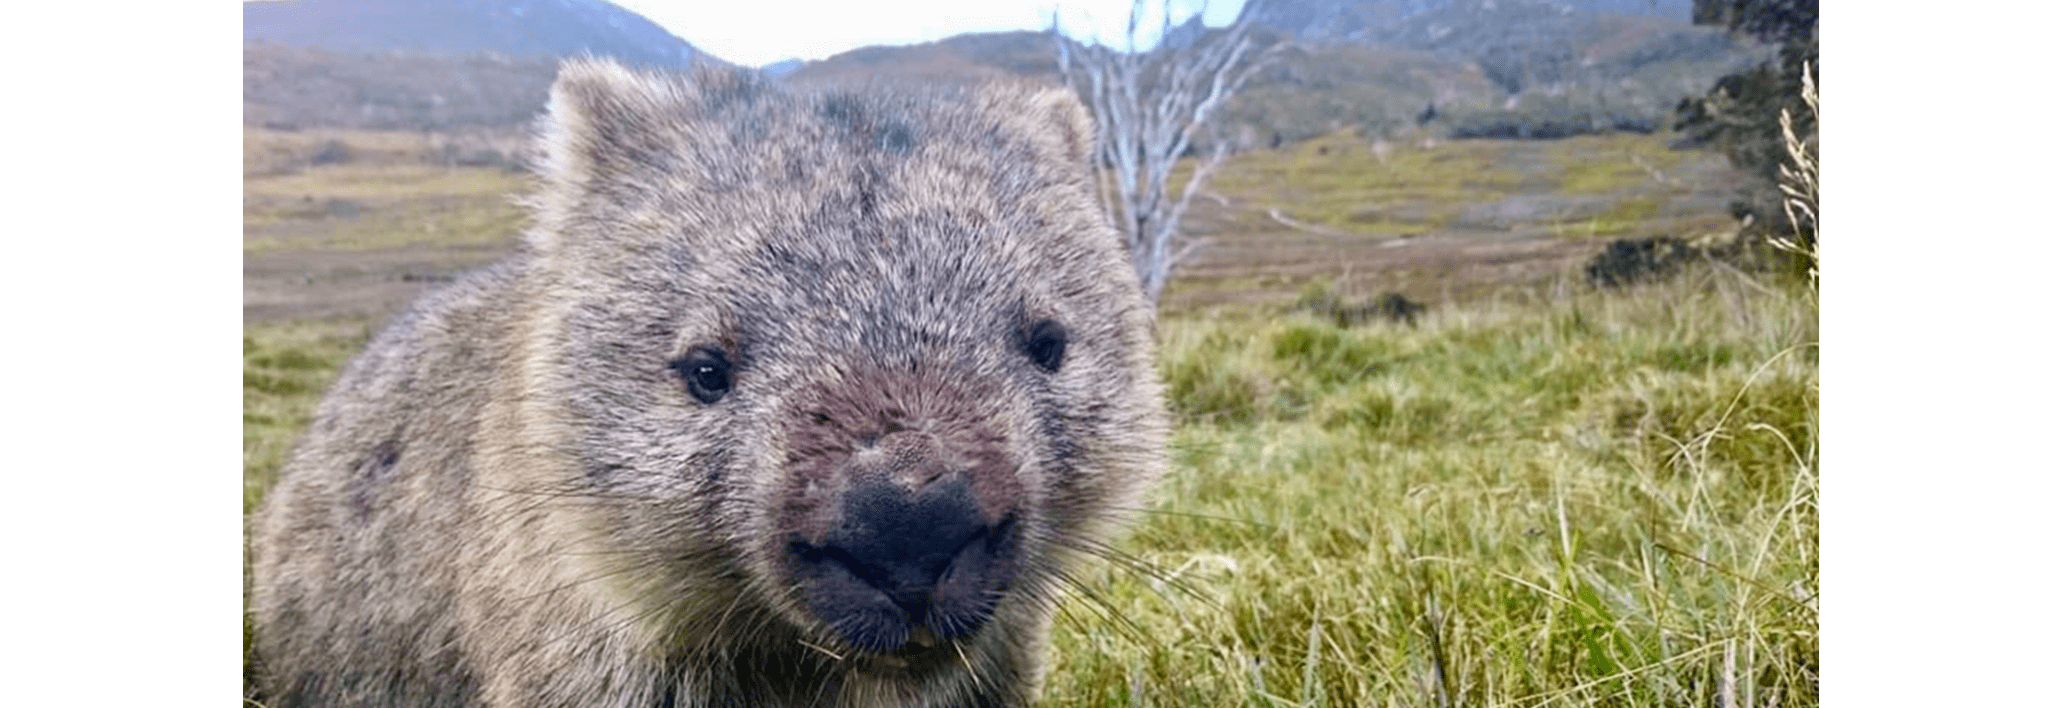 wombat at waldheim